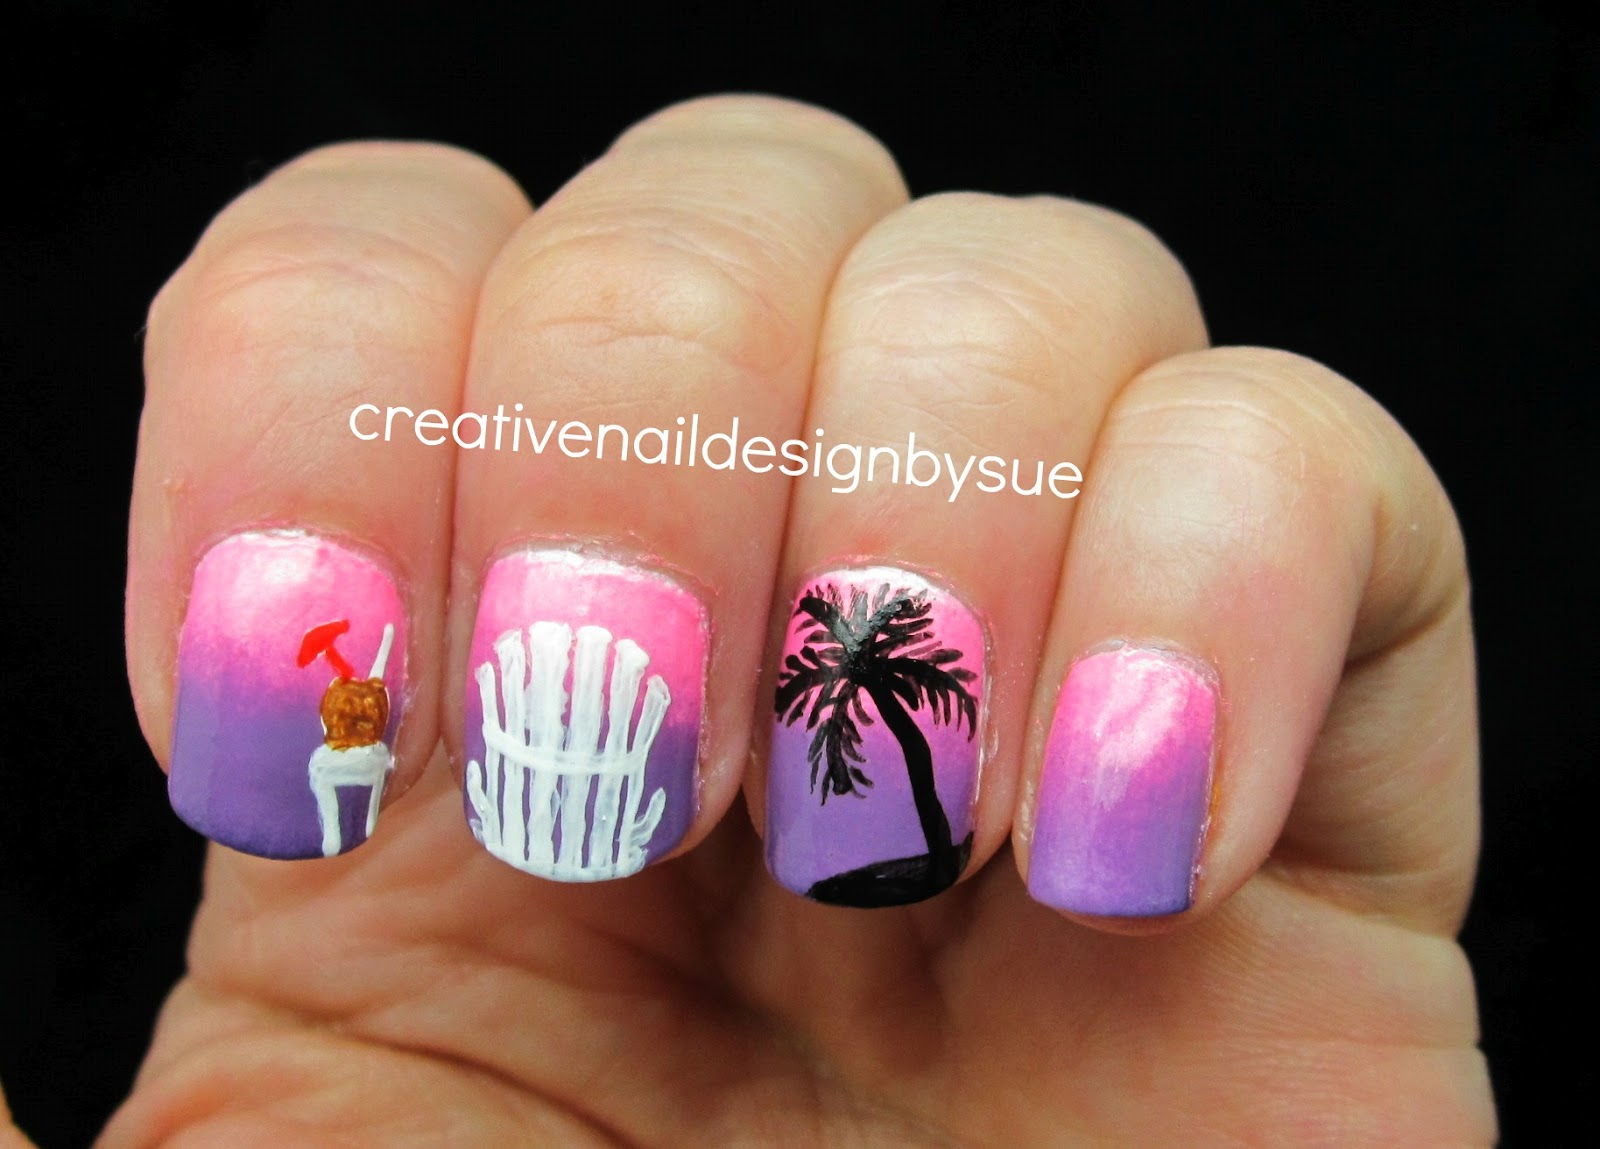 Creative nail design by sue summer challenge tropical drinks in this case it is a tropical drink in a coconut shell of course in this dream there would be palm trees prinsesfo Choice Image